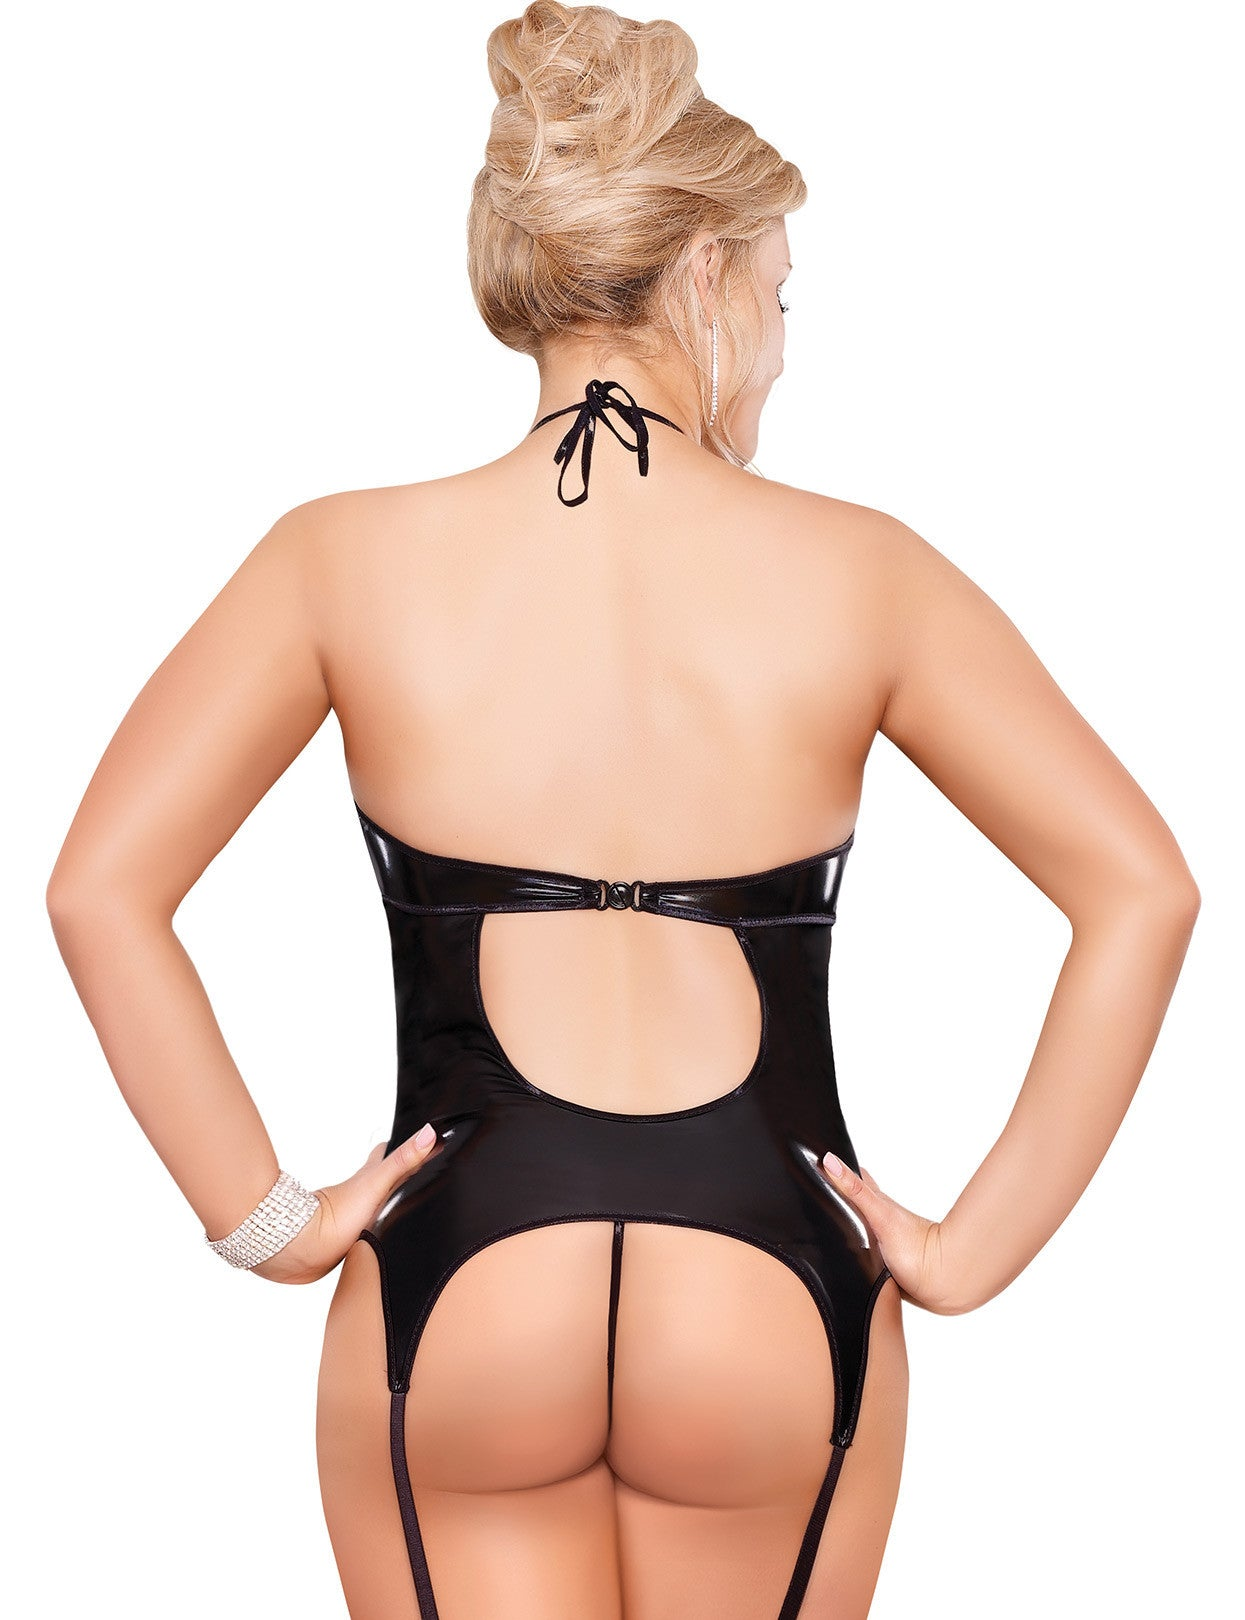 Plus Size Liquid Onyx Double Keyhole Merry Widow and G-string - just damn sexy  - 2